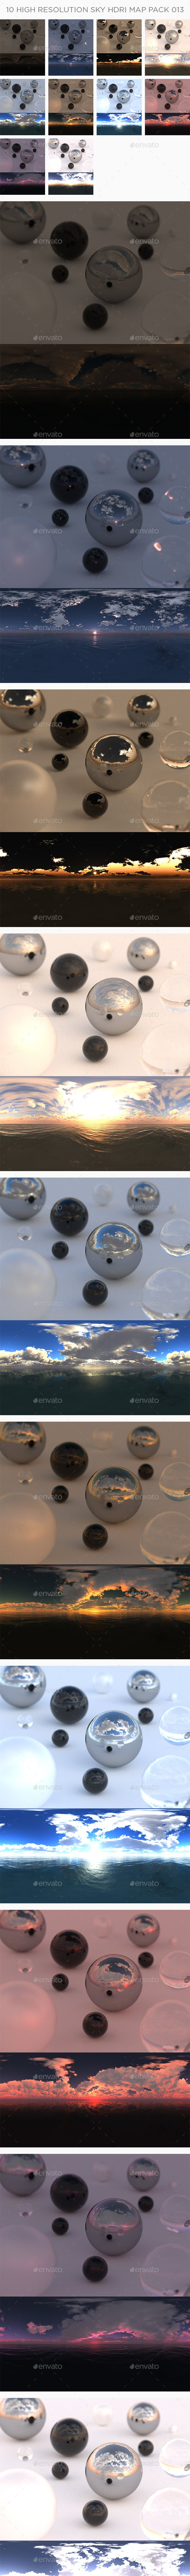 10 High Resolution Sky HDRi Maps Pack 013 - 3DOcean Item for Sale